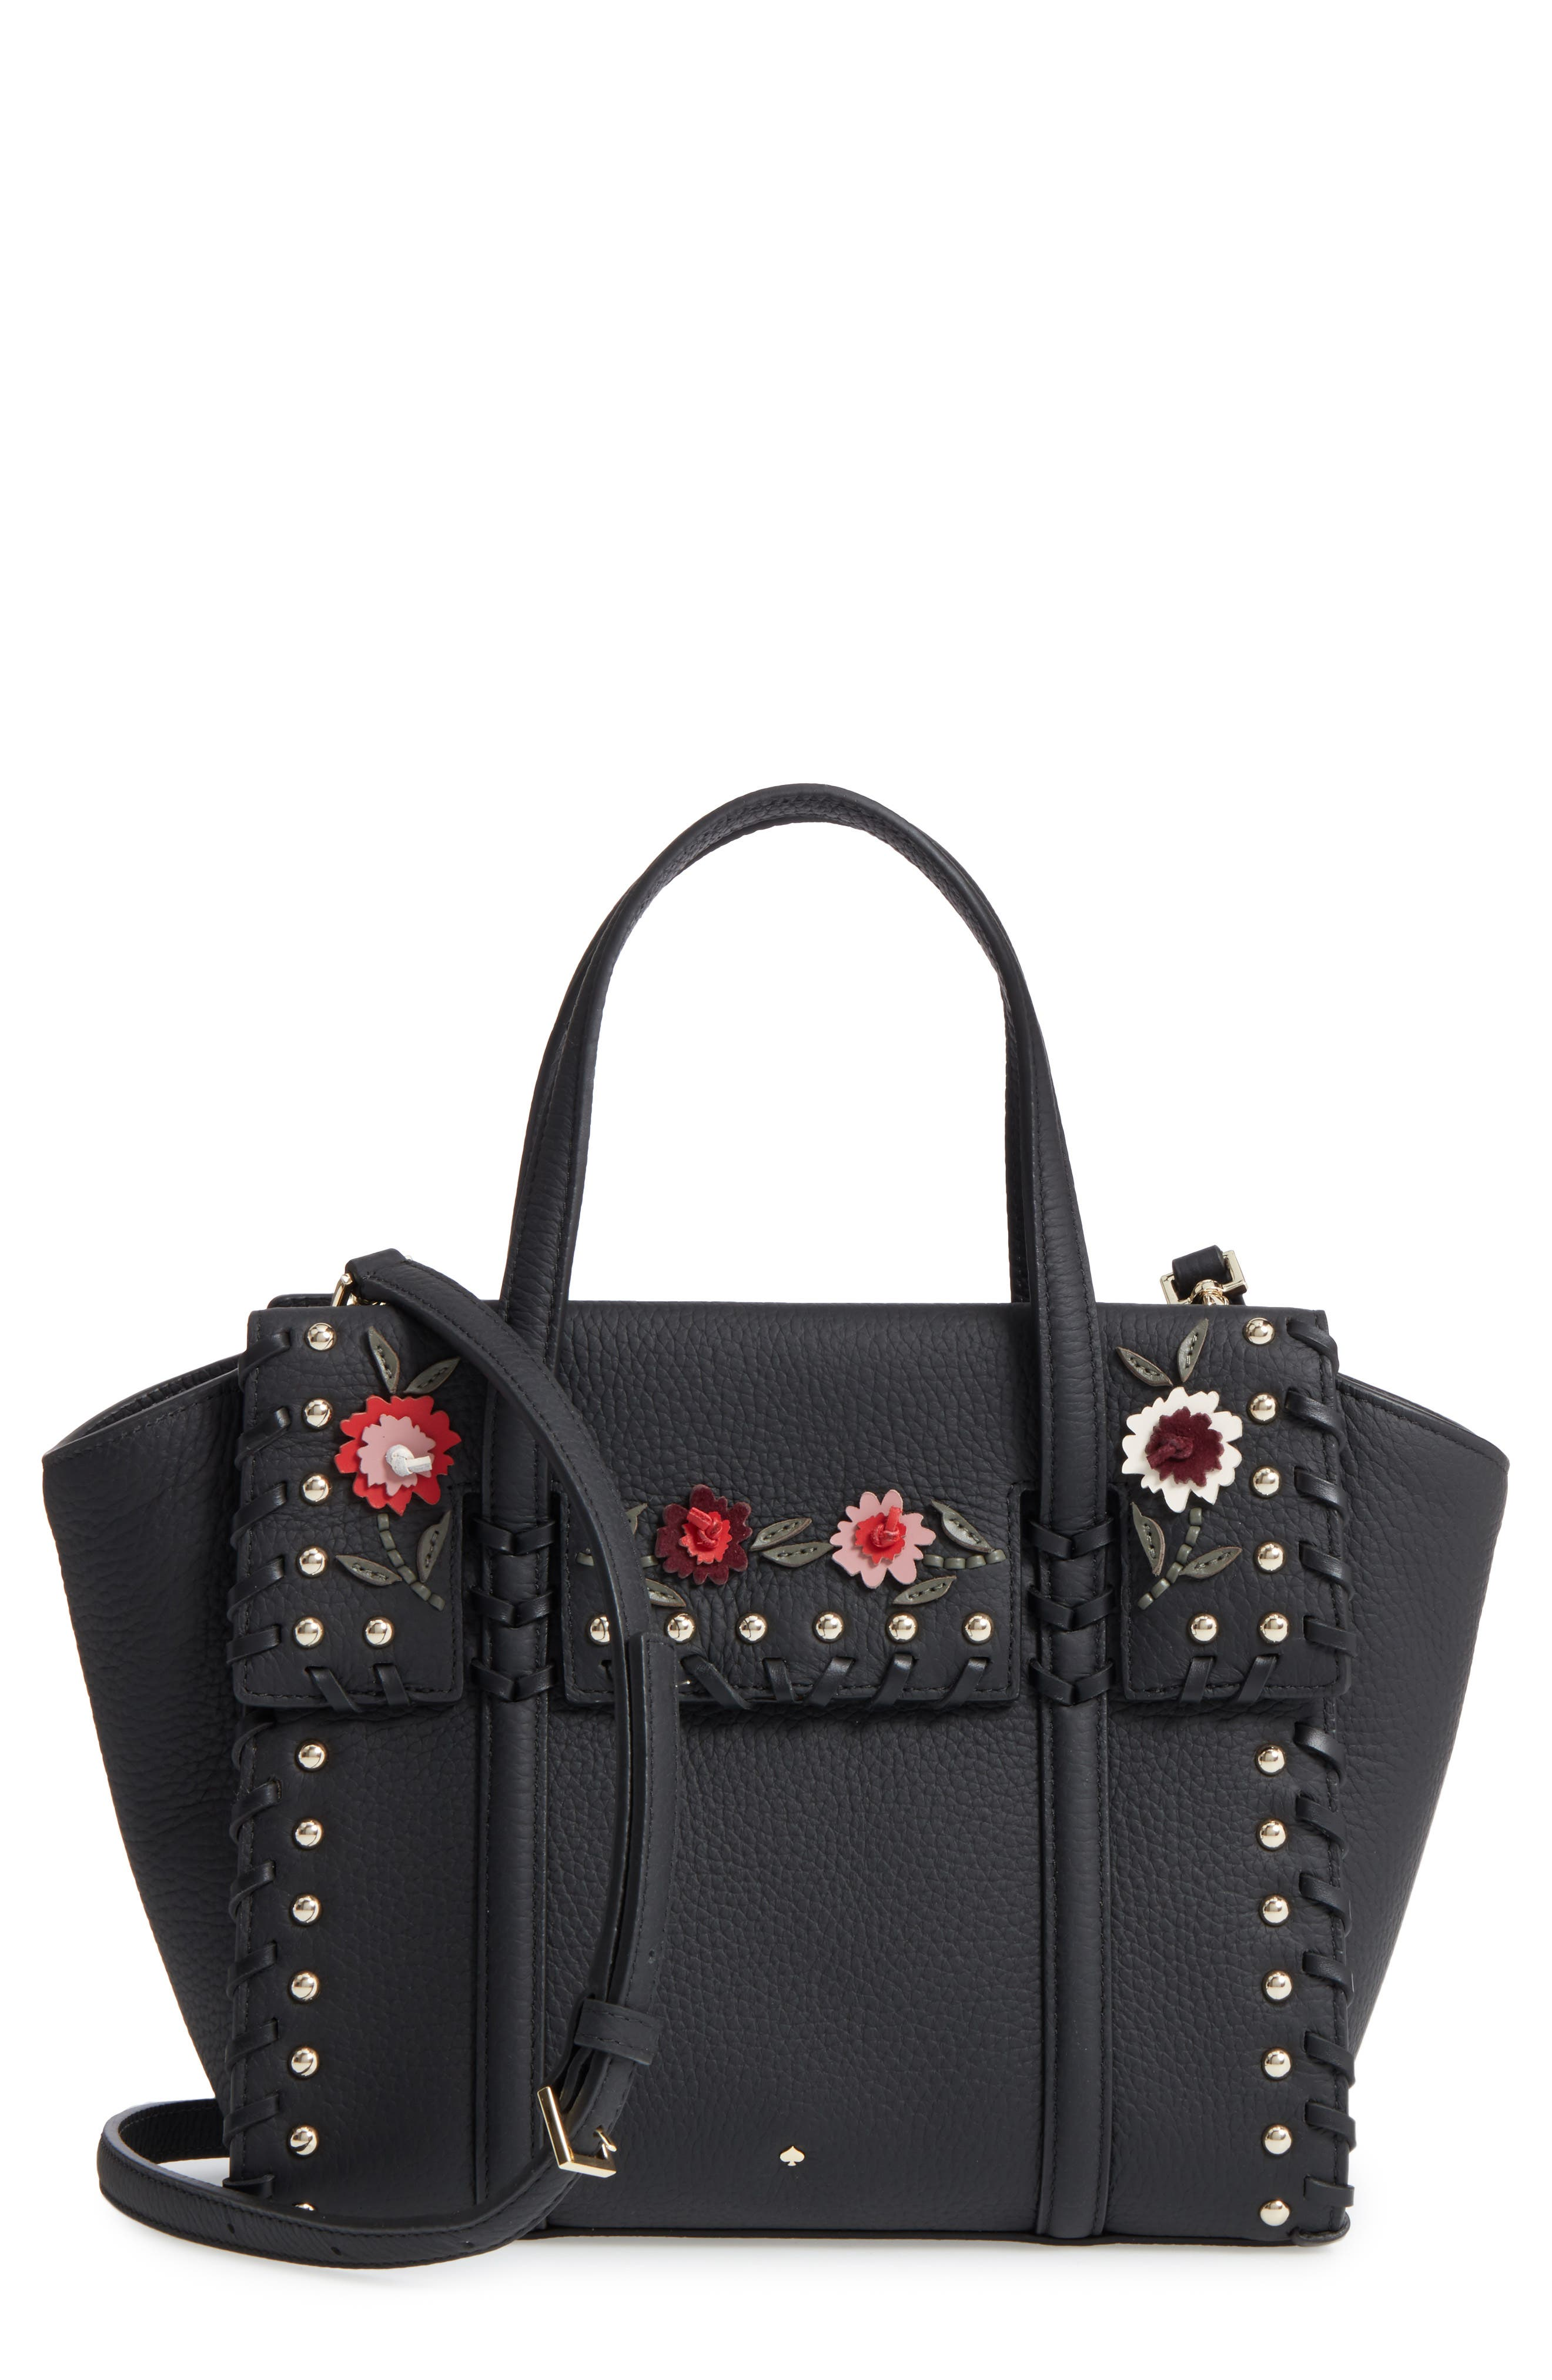 Main Image - kate spade new york small madison daniels drive - abigail embellished leather tote